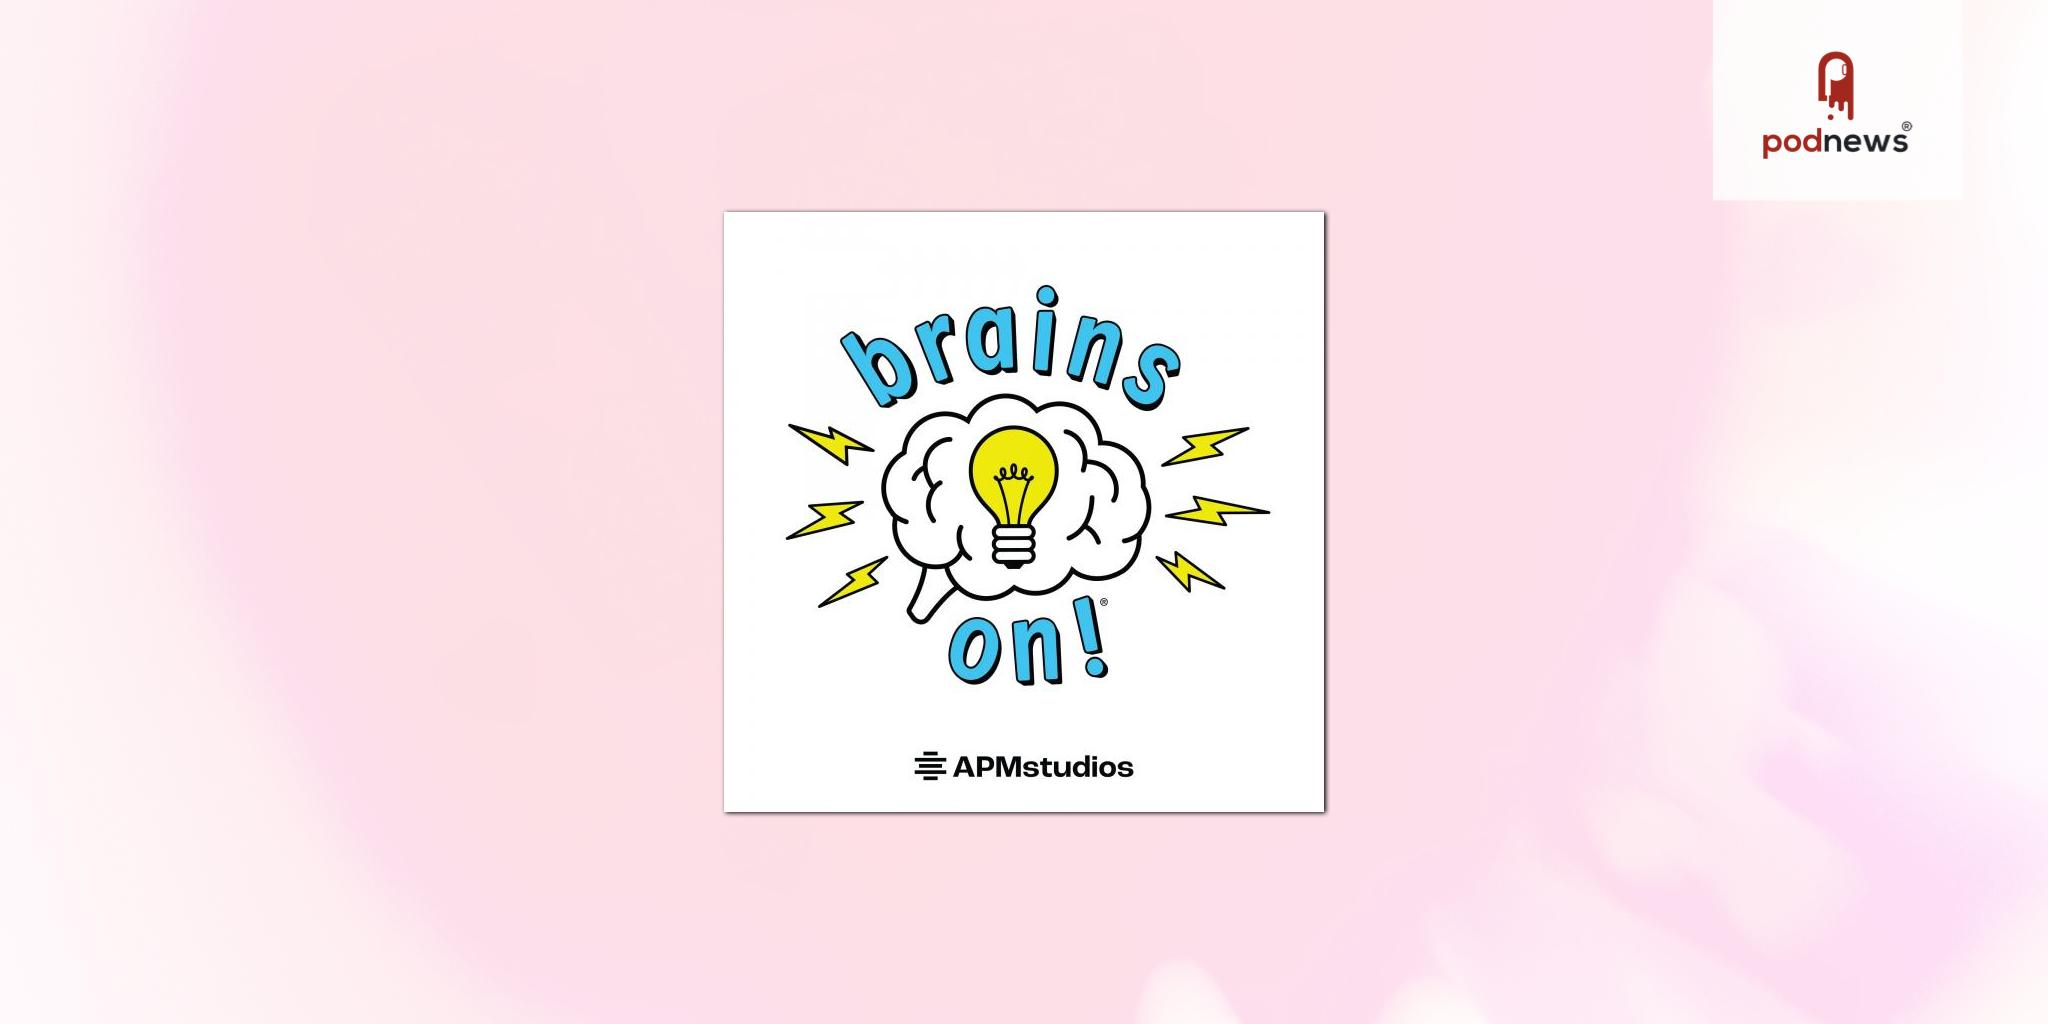 APM partners with Listenwise to bring award-winning science podcast Brains On! into classrooms